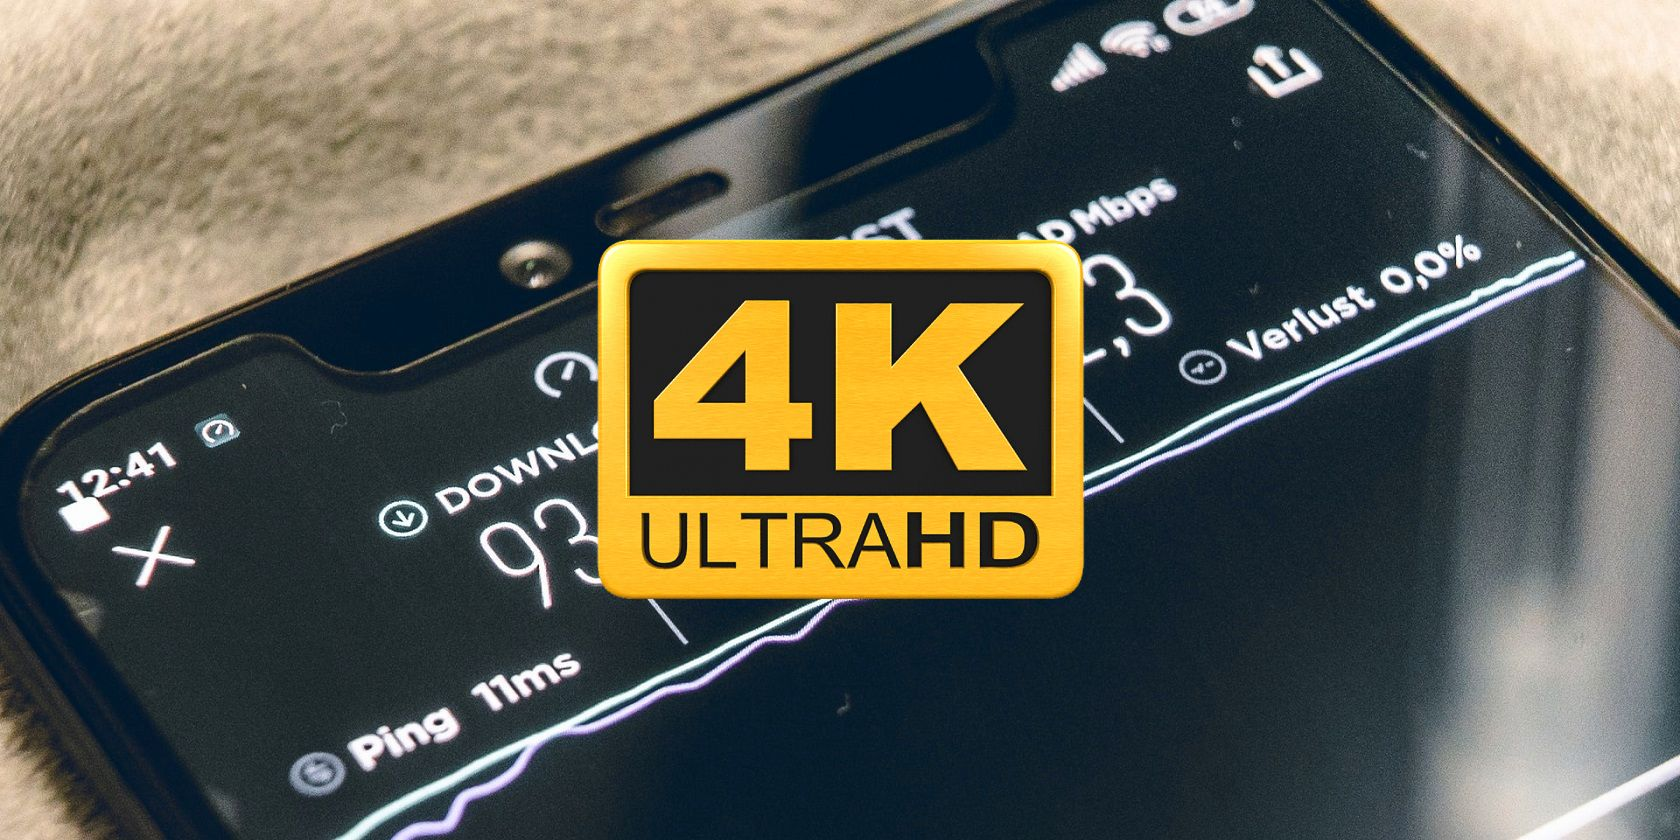 How to Check if Your Network Can Stream 4K Videos